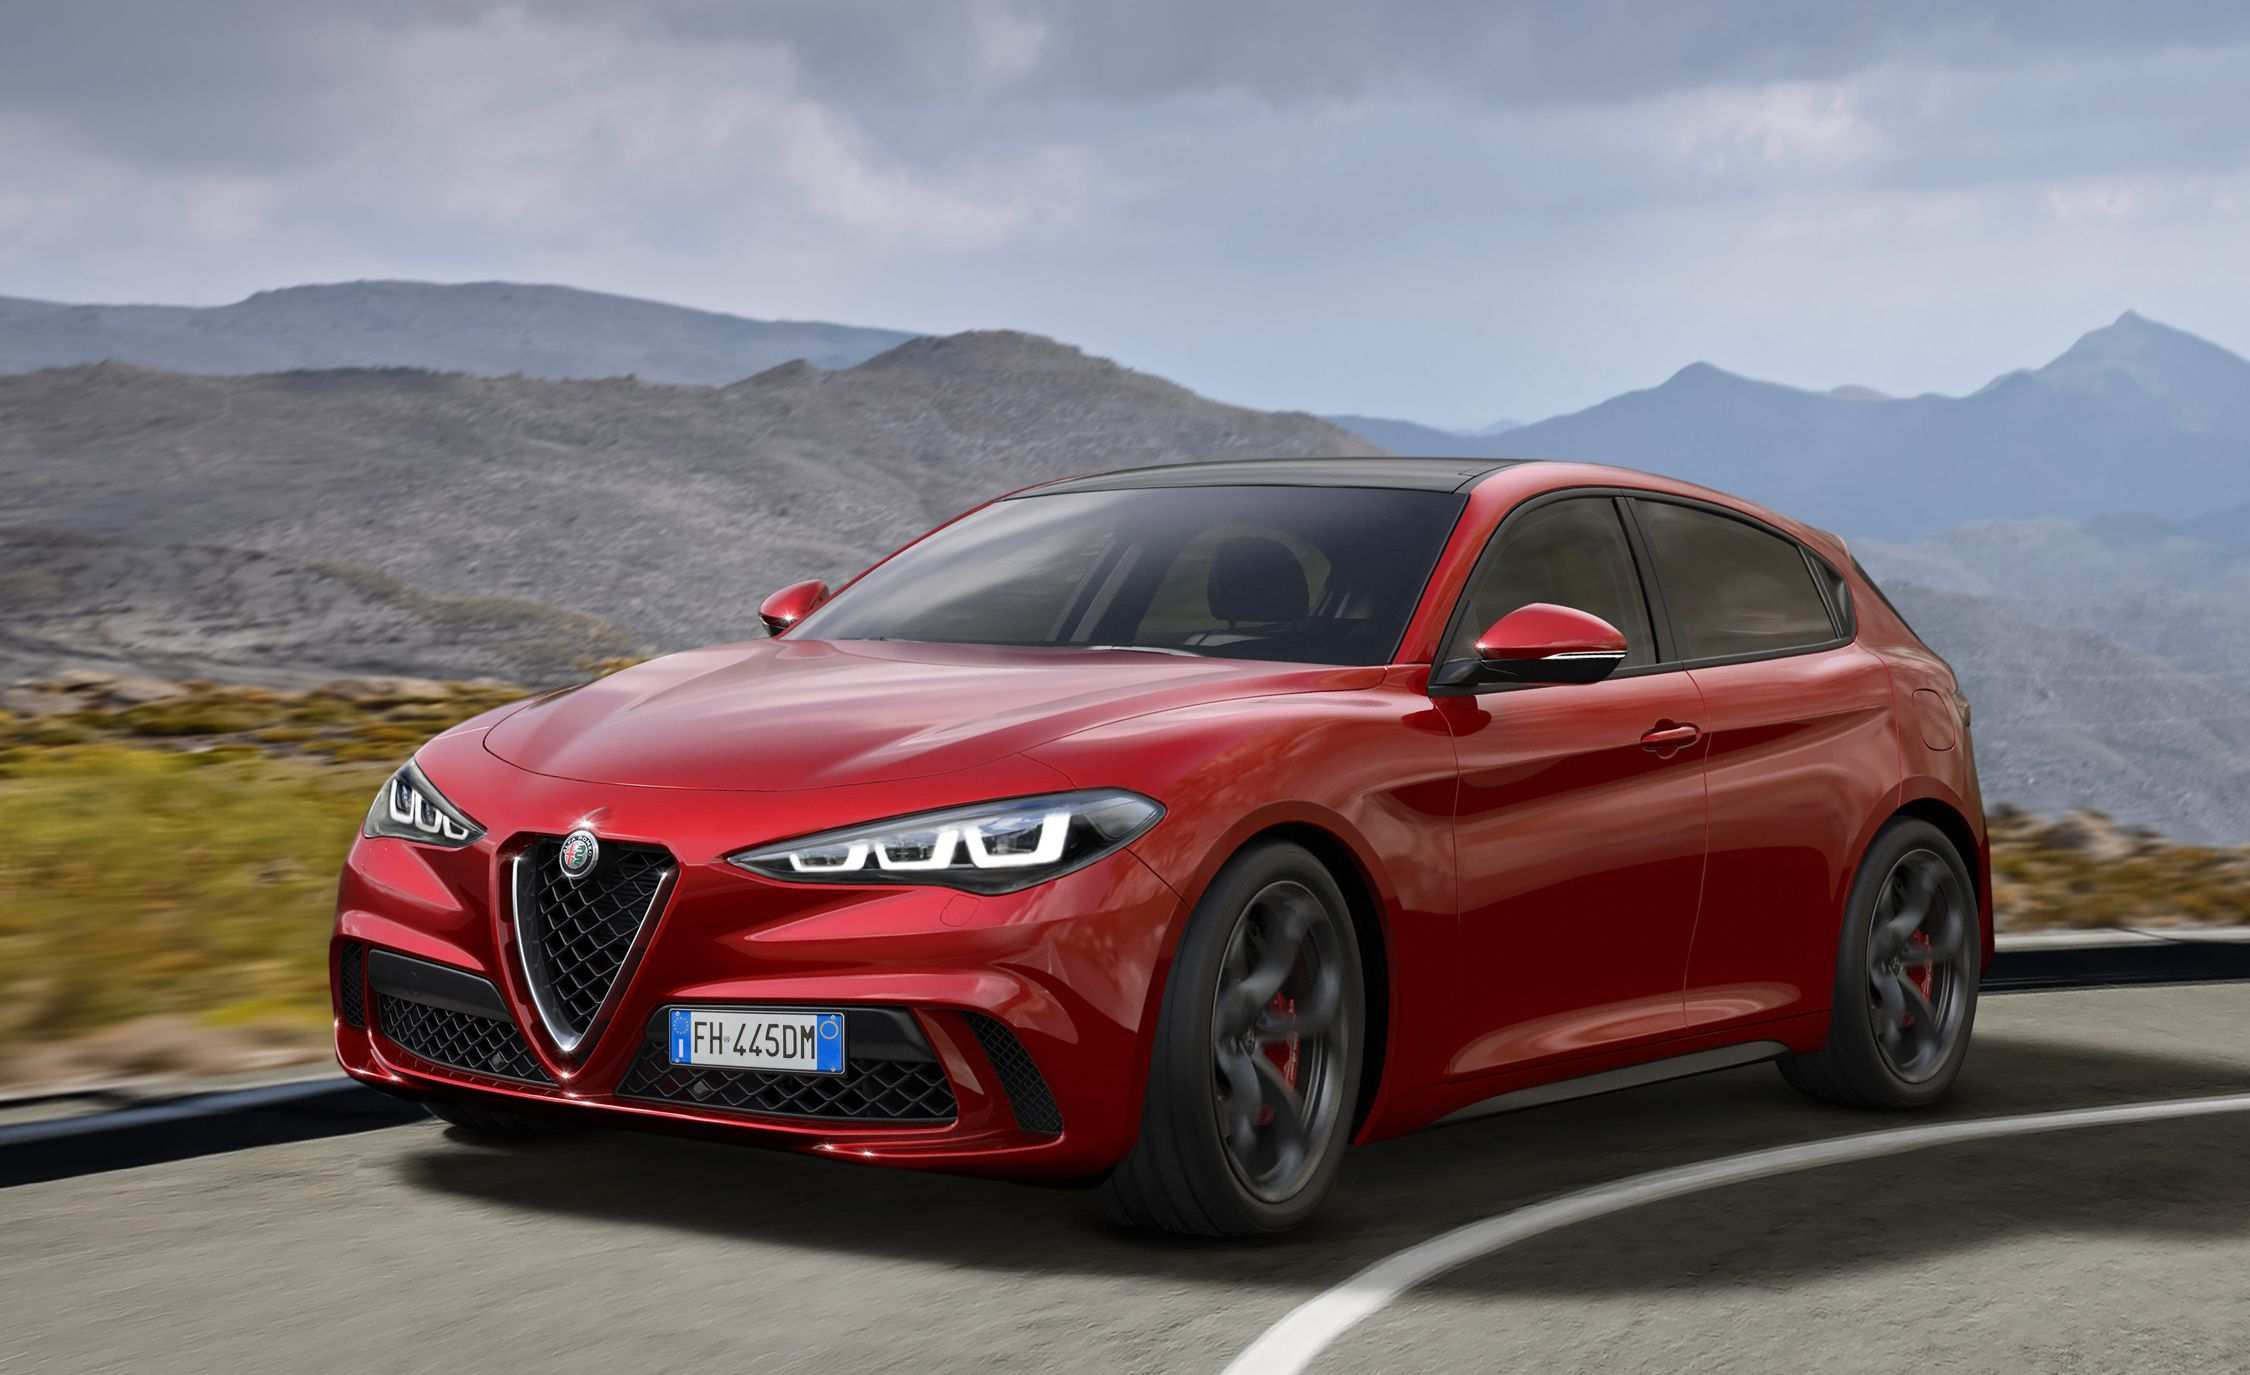 16 New 2020 Alfa Romeo Giulietta 2018 Images for 2020 Alfa Romeo Giulietta 2018